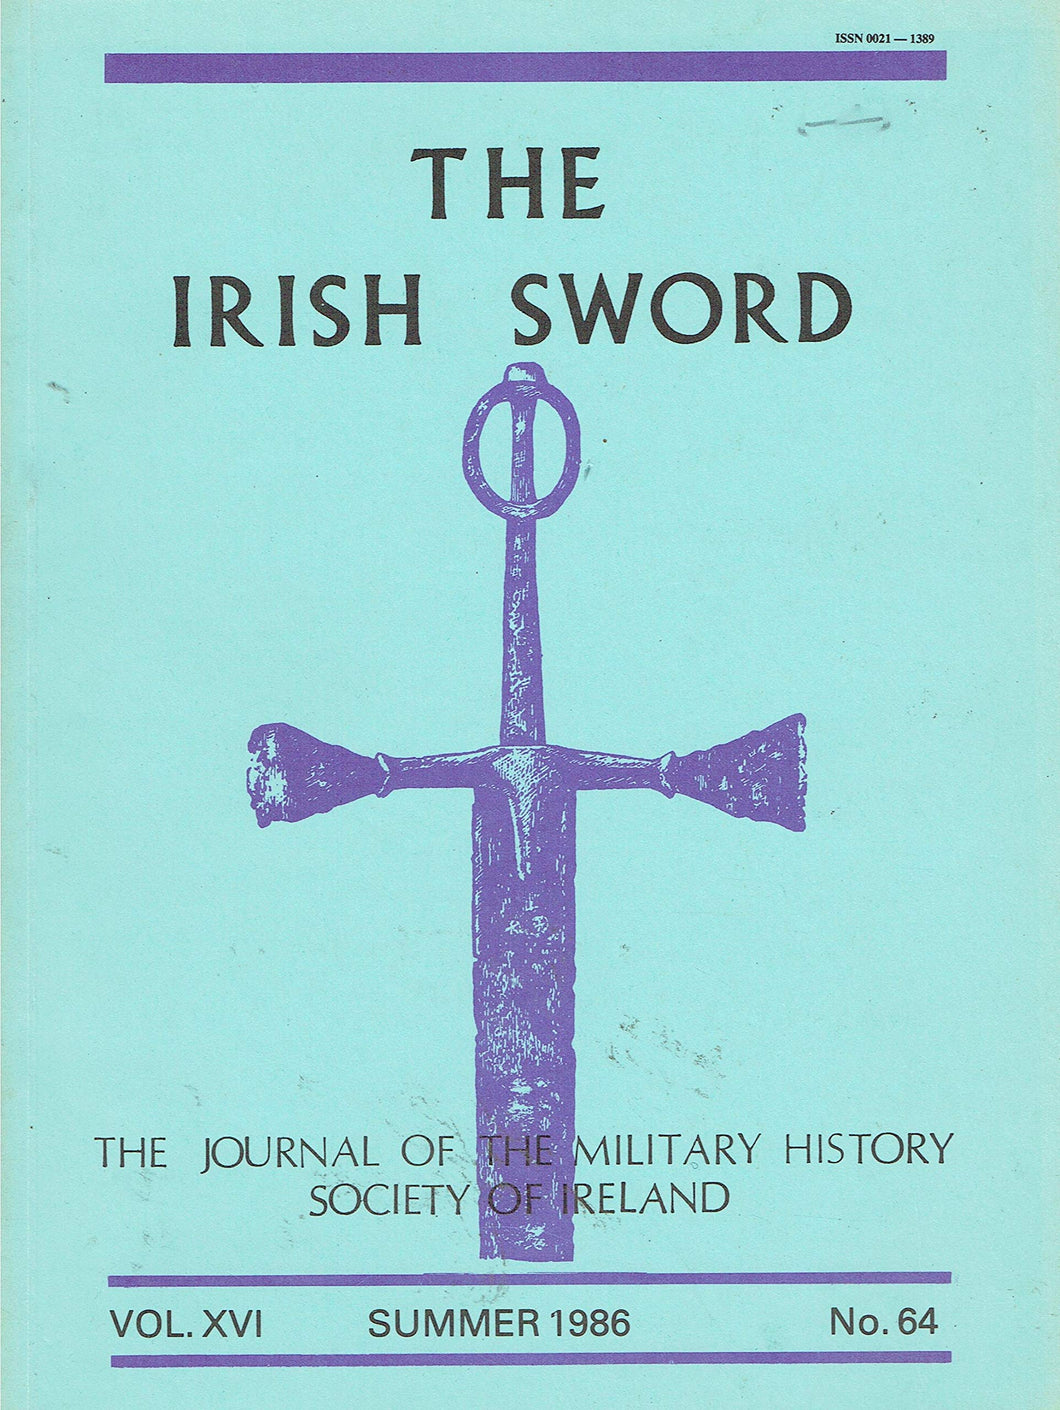 The Irish Sword, The Journal Of The Military History Society Of Ireland Vol Xvi Summer 1986 No. 64